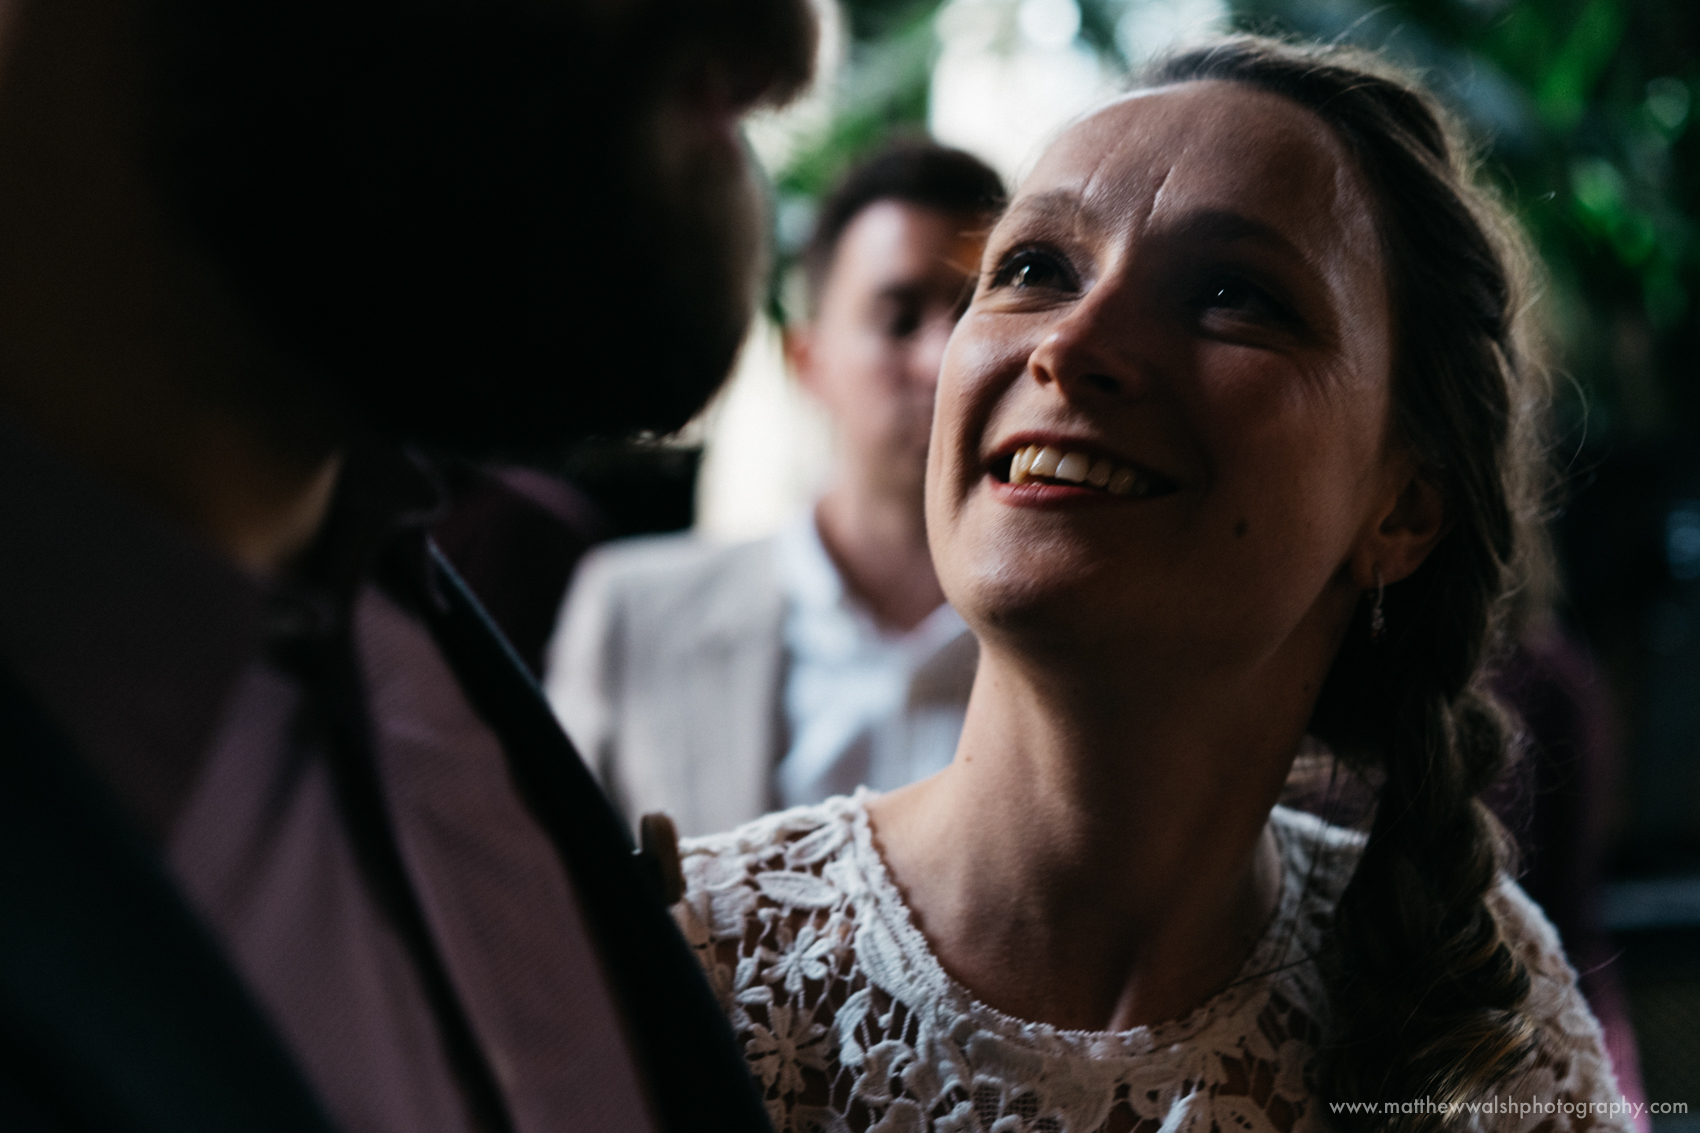 Another one of my favourites as you can see how much the bride really admires and loves her close friend , to me this is really what capturing the moment is all about